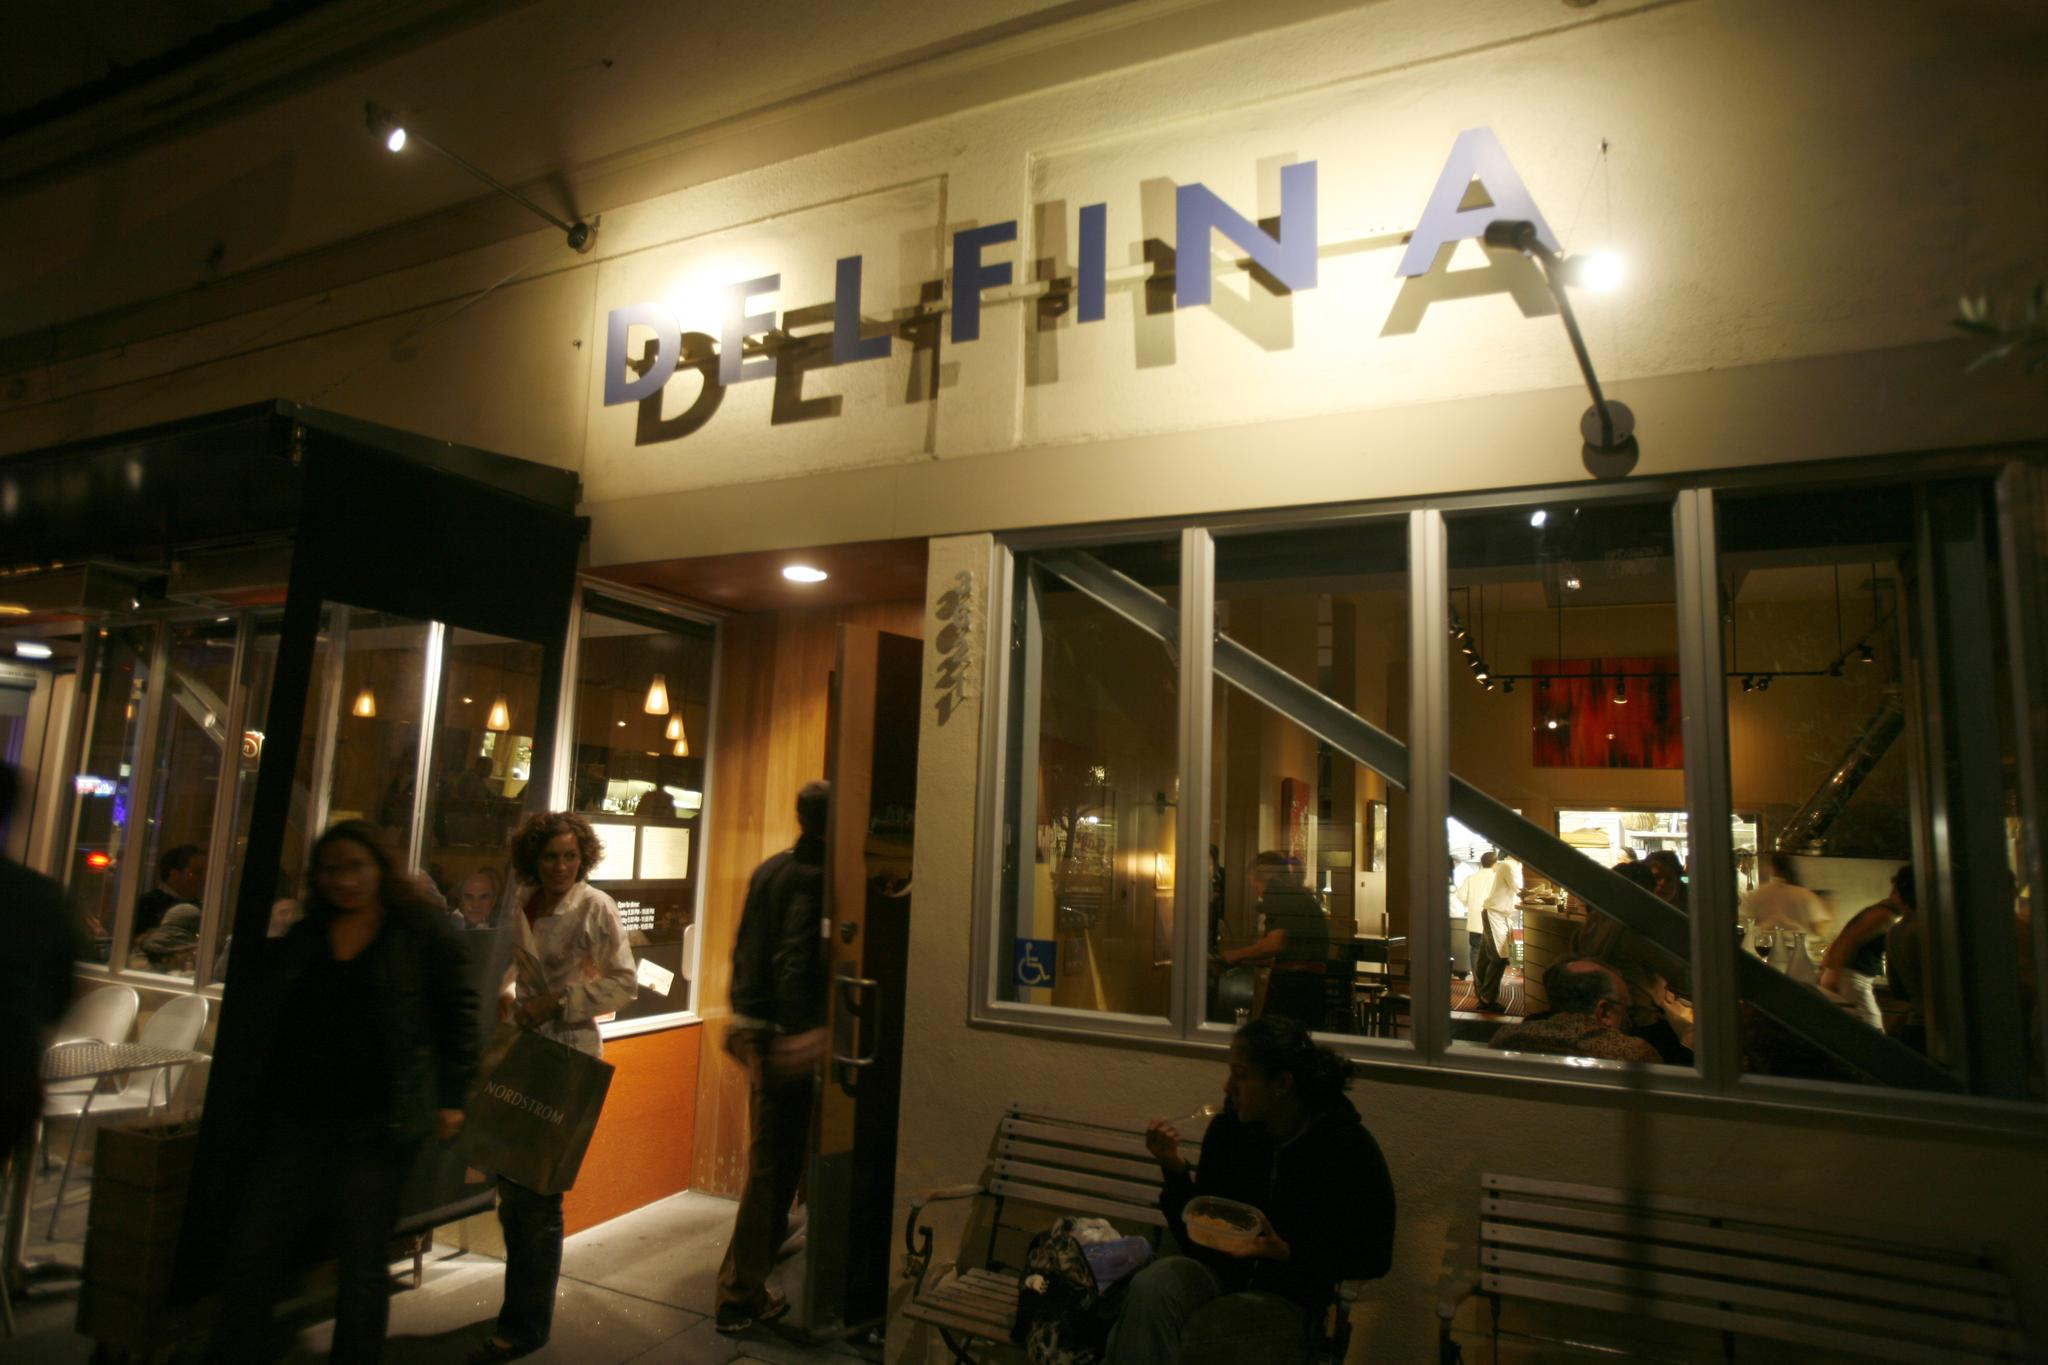 The block of 18th Street between Dolores and Guerrero is a dining destination, with establishments such as Delfina attracting foodies from all over the city.